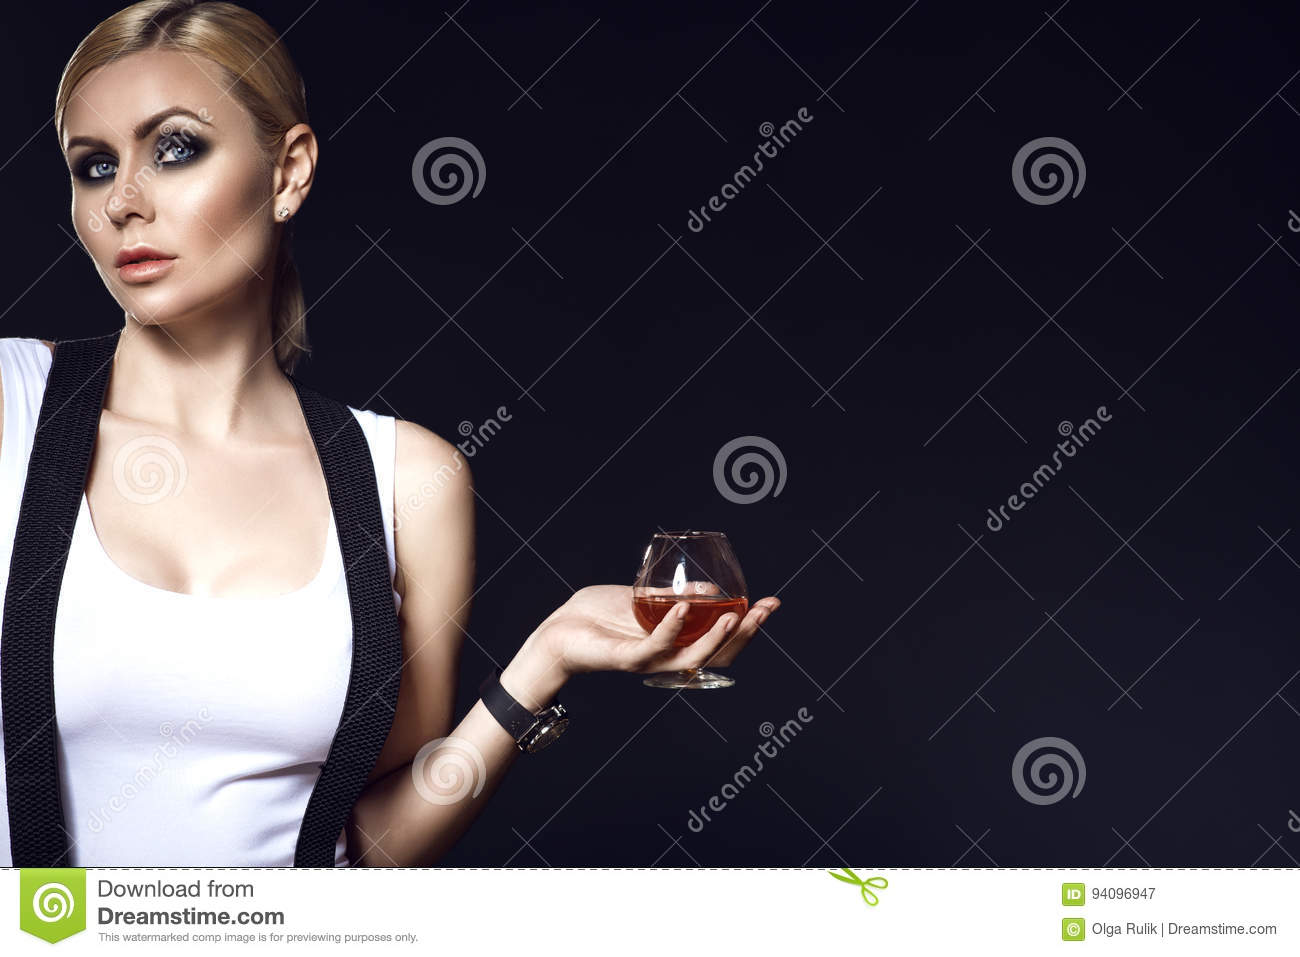 2f4f666d805a57 Portrait of chic blond model with pulled back hair and smoky eye make-up  wearing white top with suspenders over her shoulders and holding a glass of  brandy.